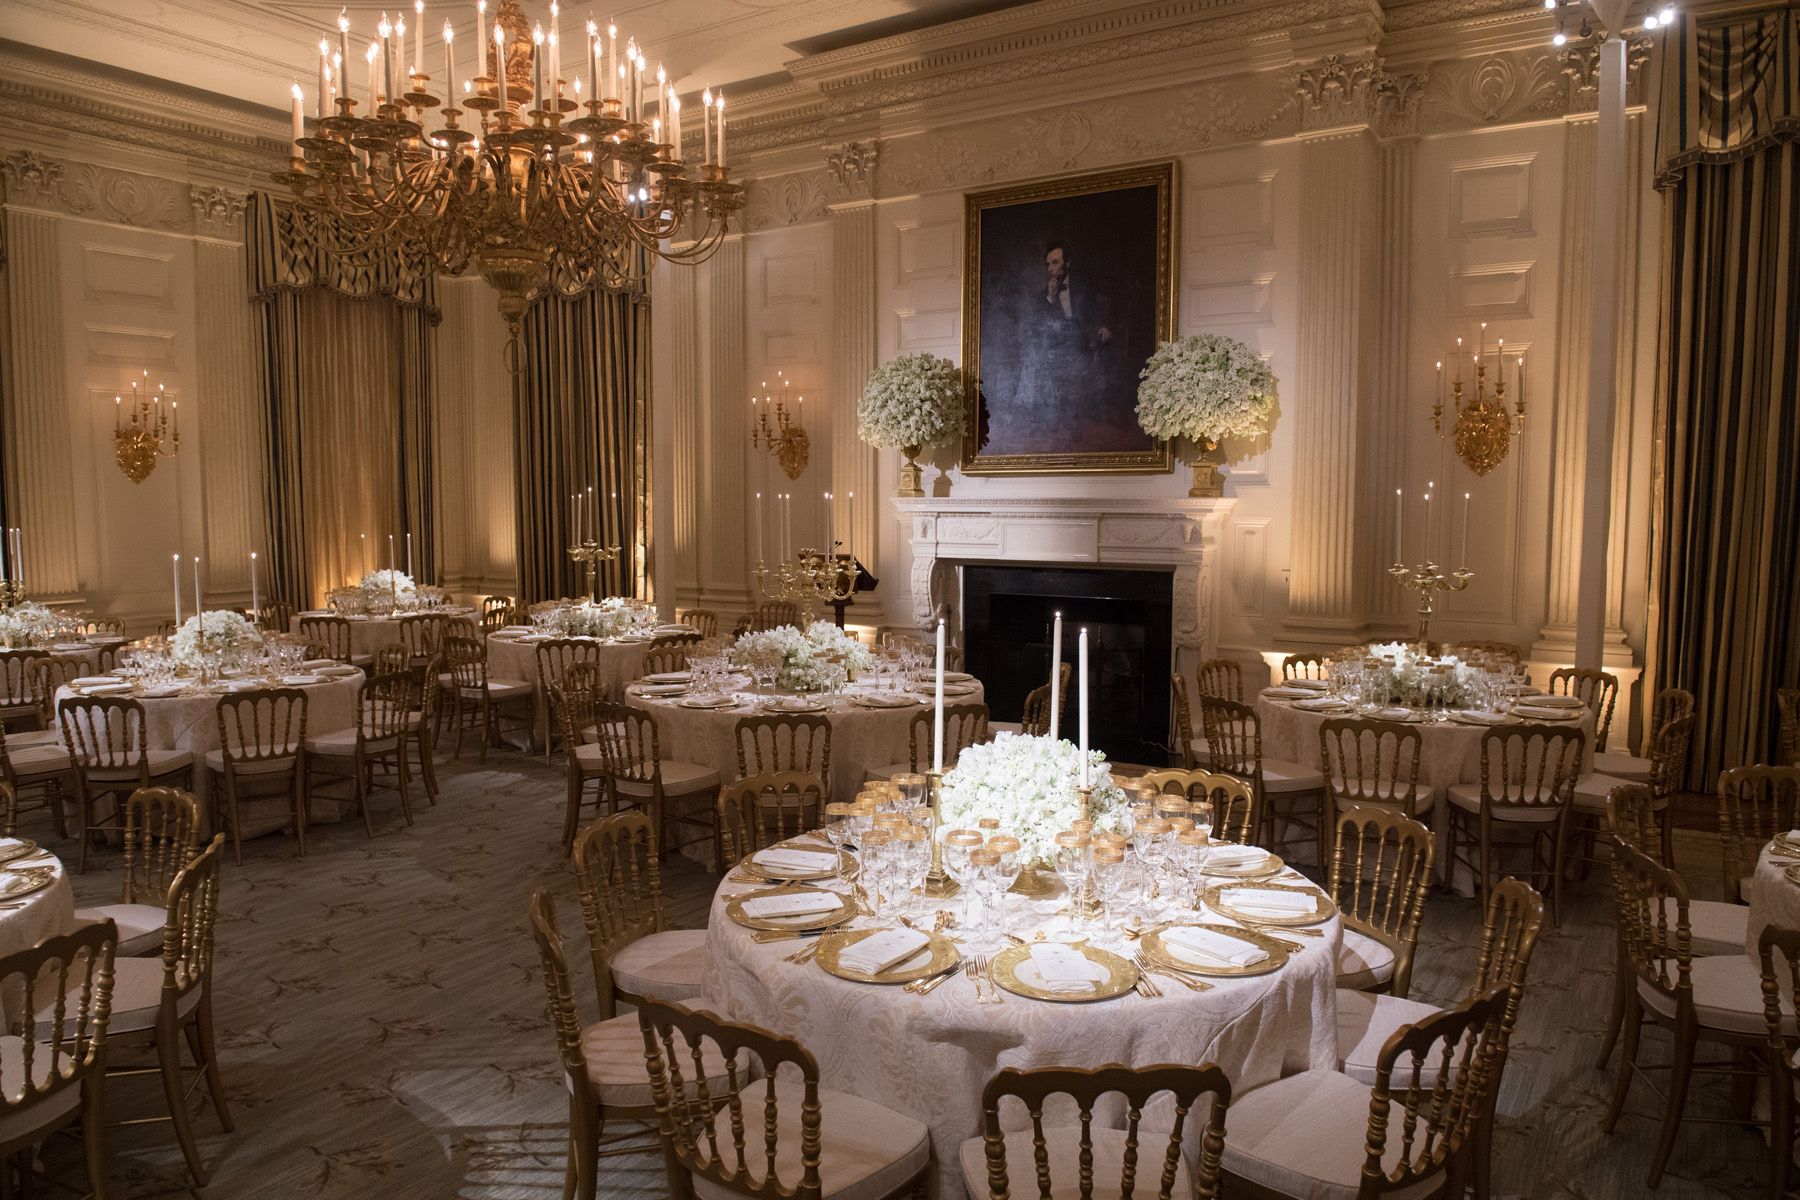 A Look Inside the Stunning State Dinner at the White House